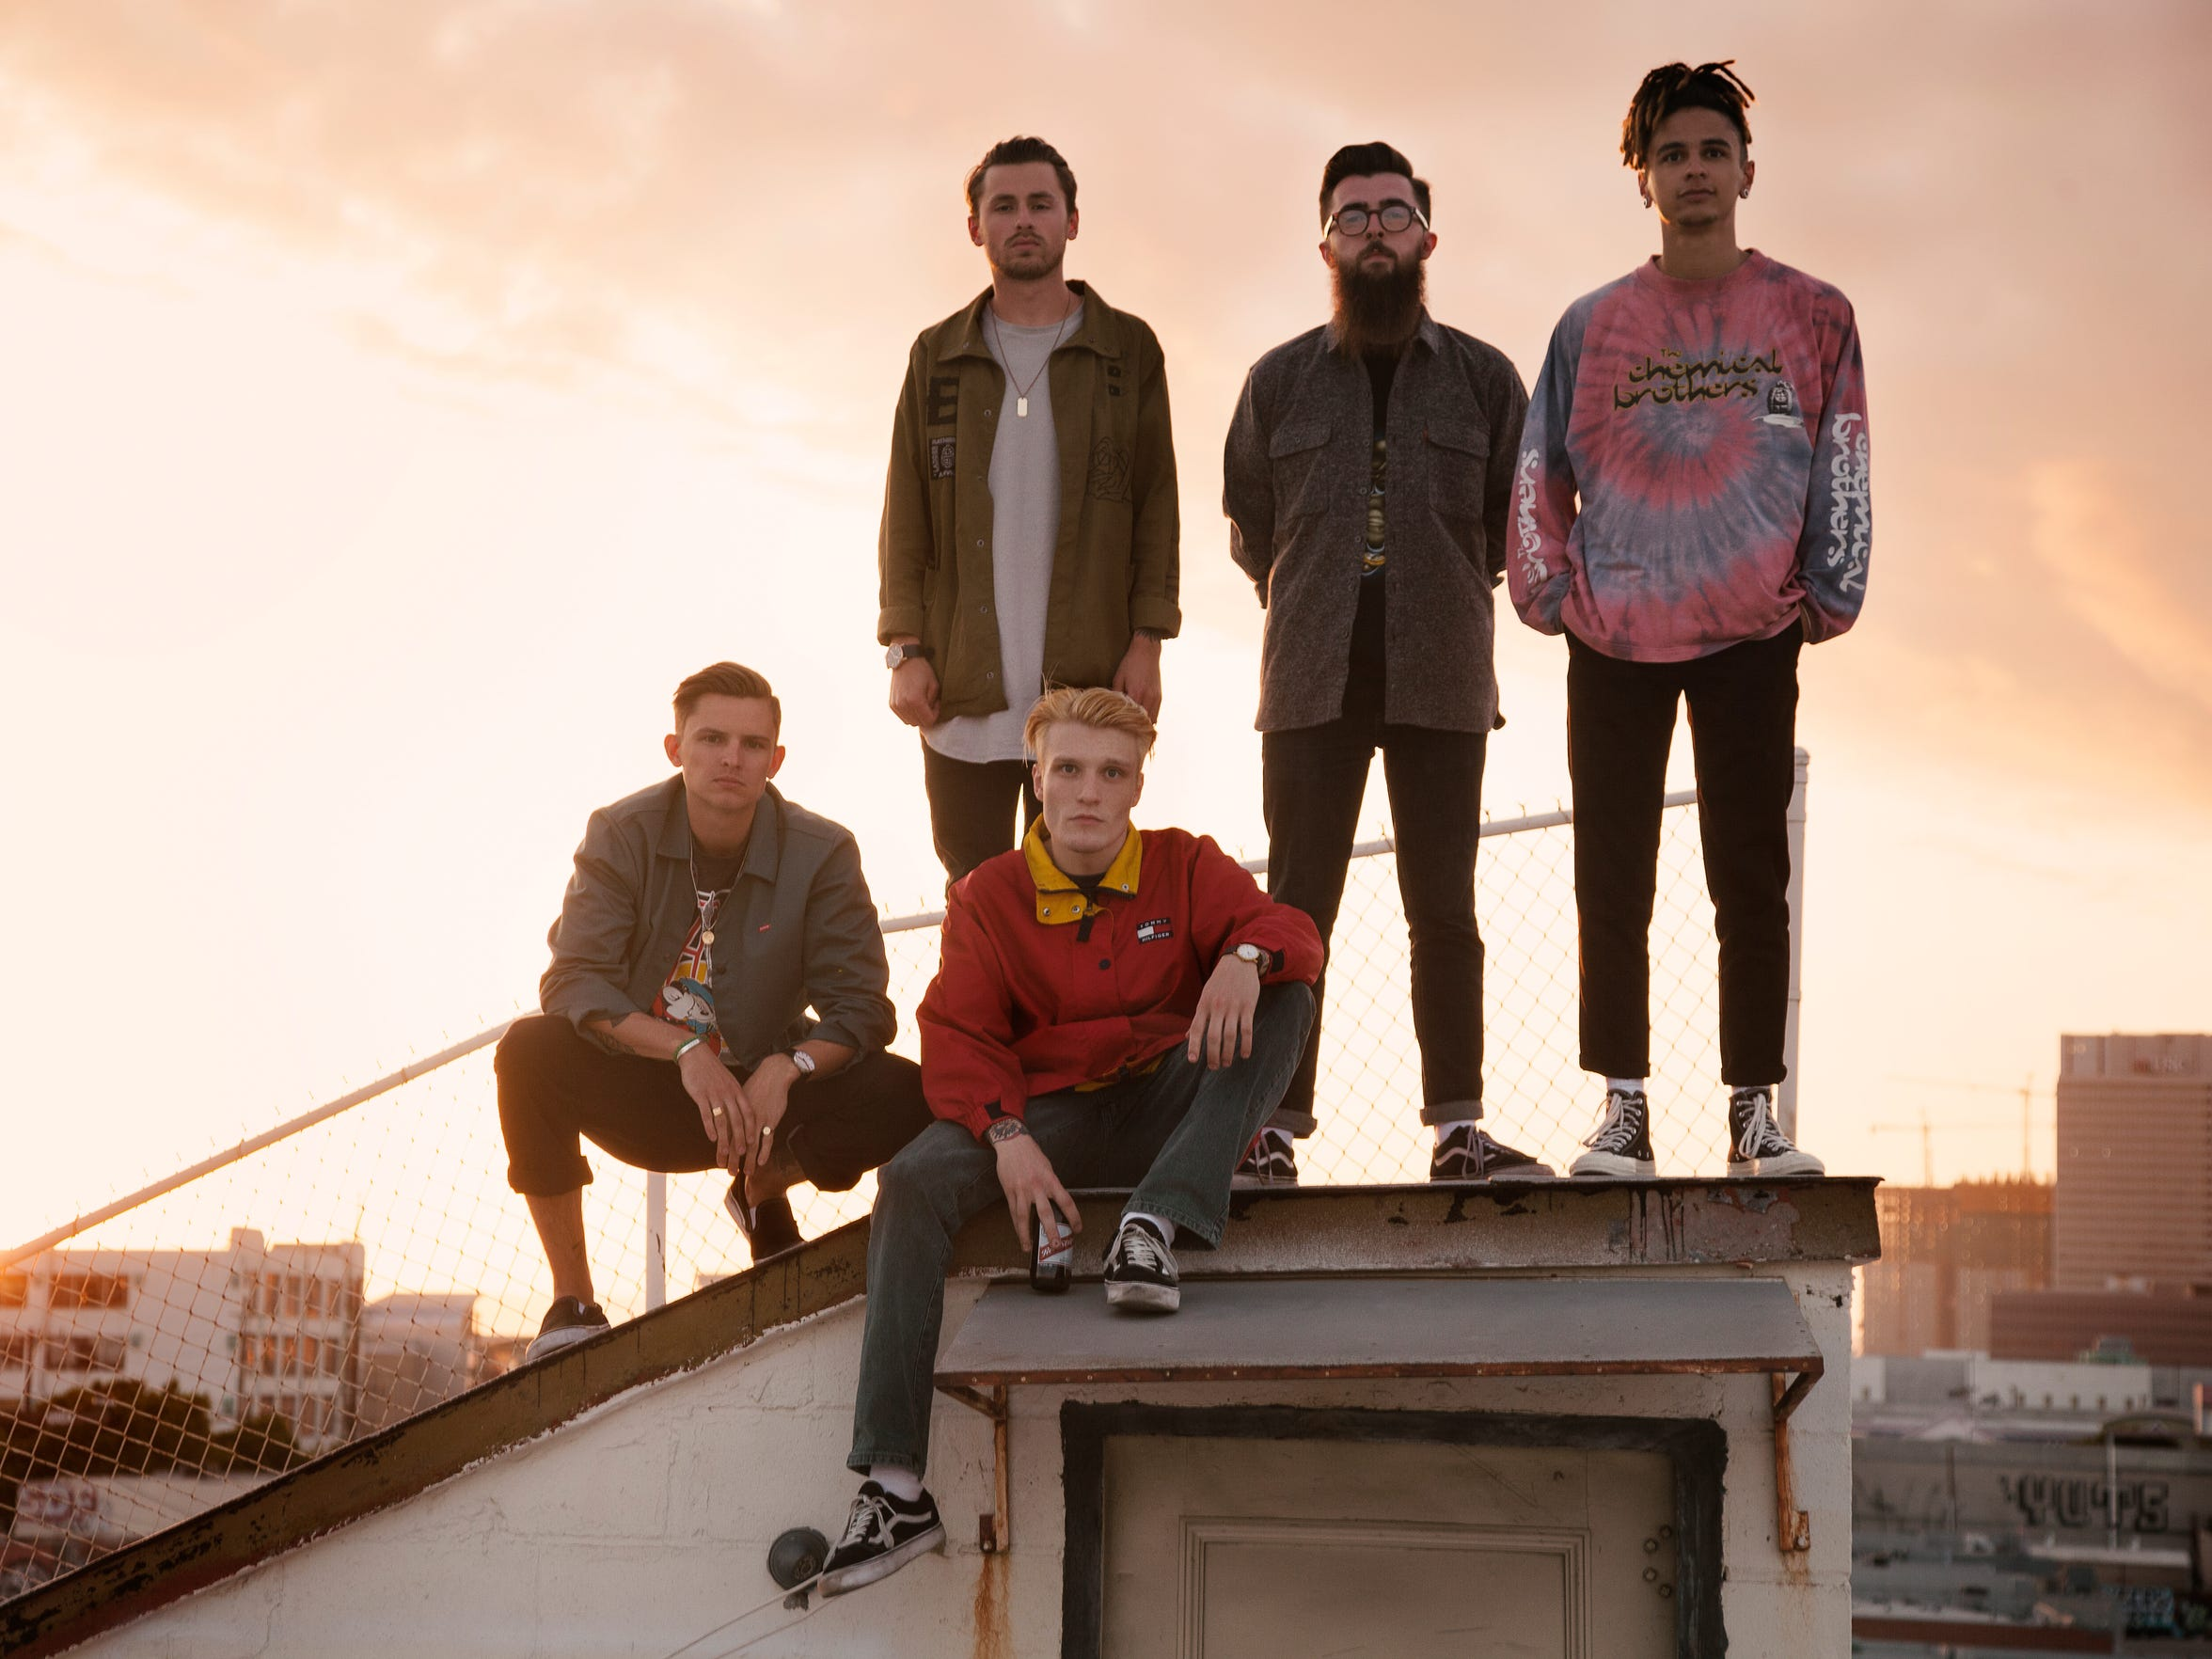 Neck Deep is one of the headlining bands during this year's Vans Warped Tour.